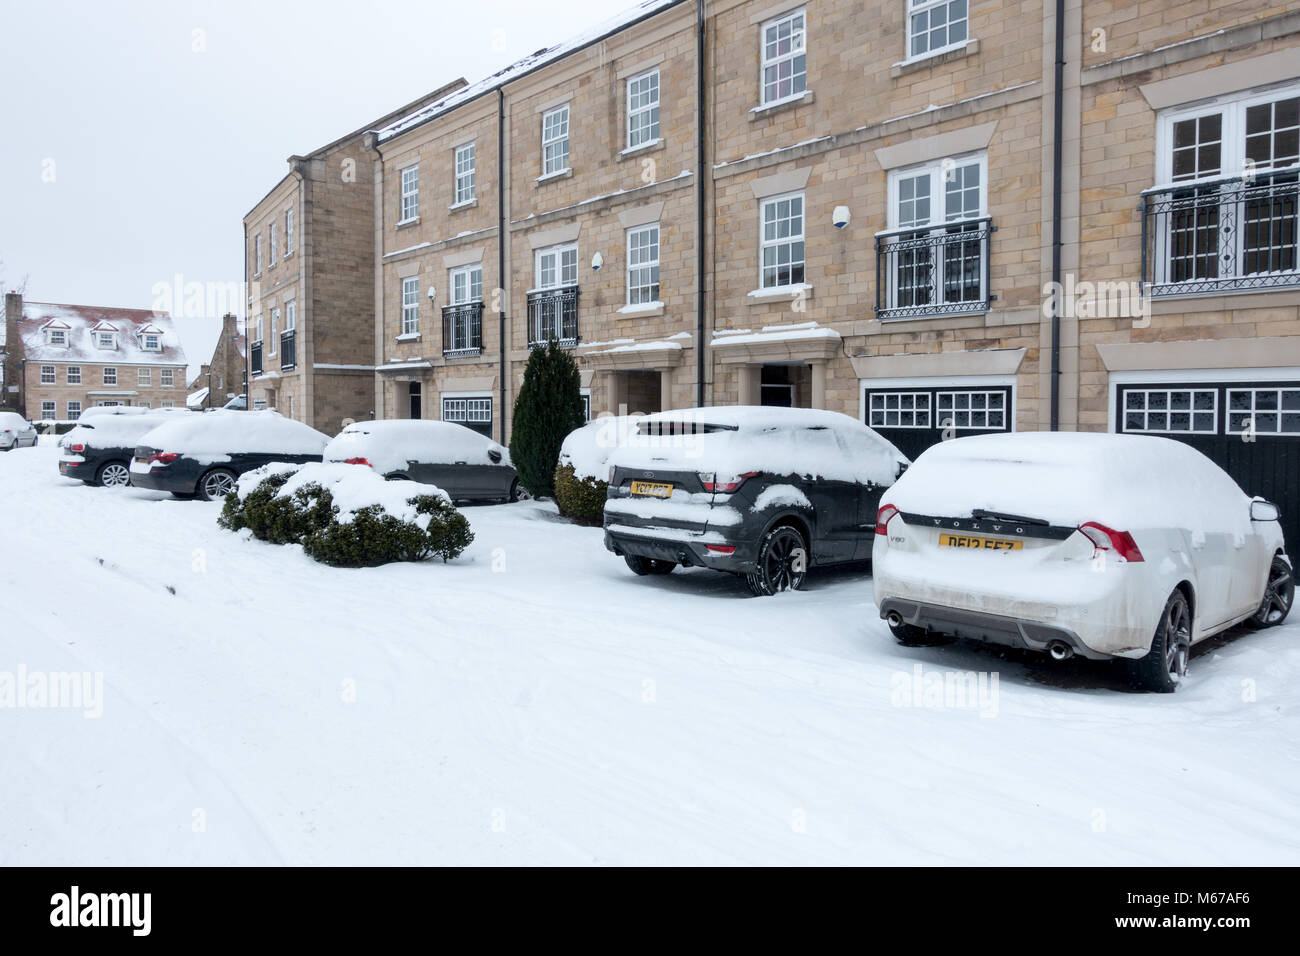 UK weather: Burley-in-Wharfedale, West Yorkshire, UK. 1st March 2018.  Snowed in, people make sensible choices leaving - Stock Image